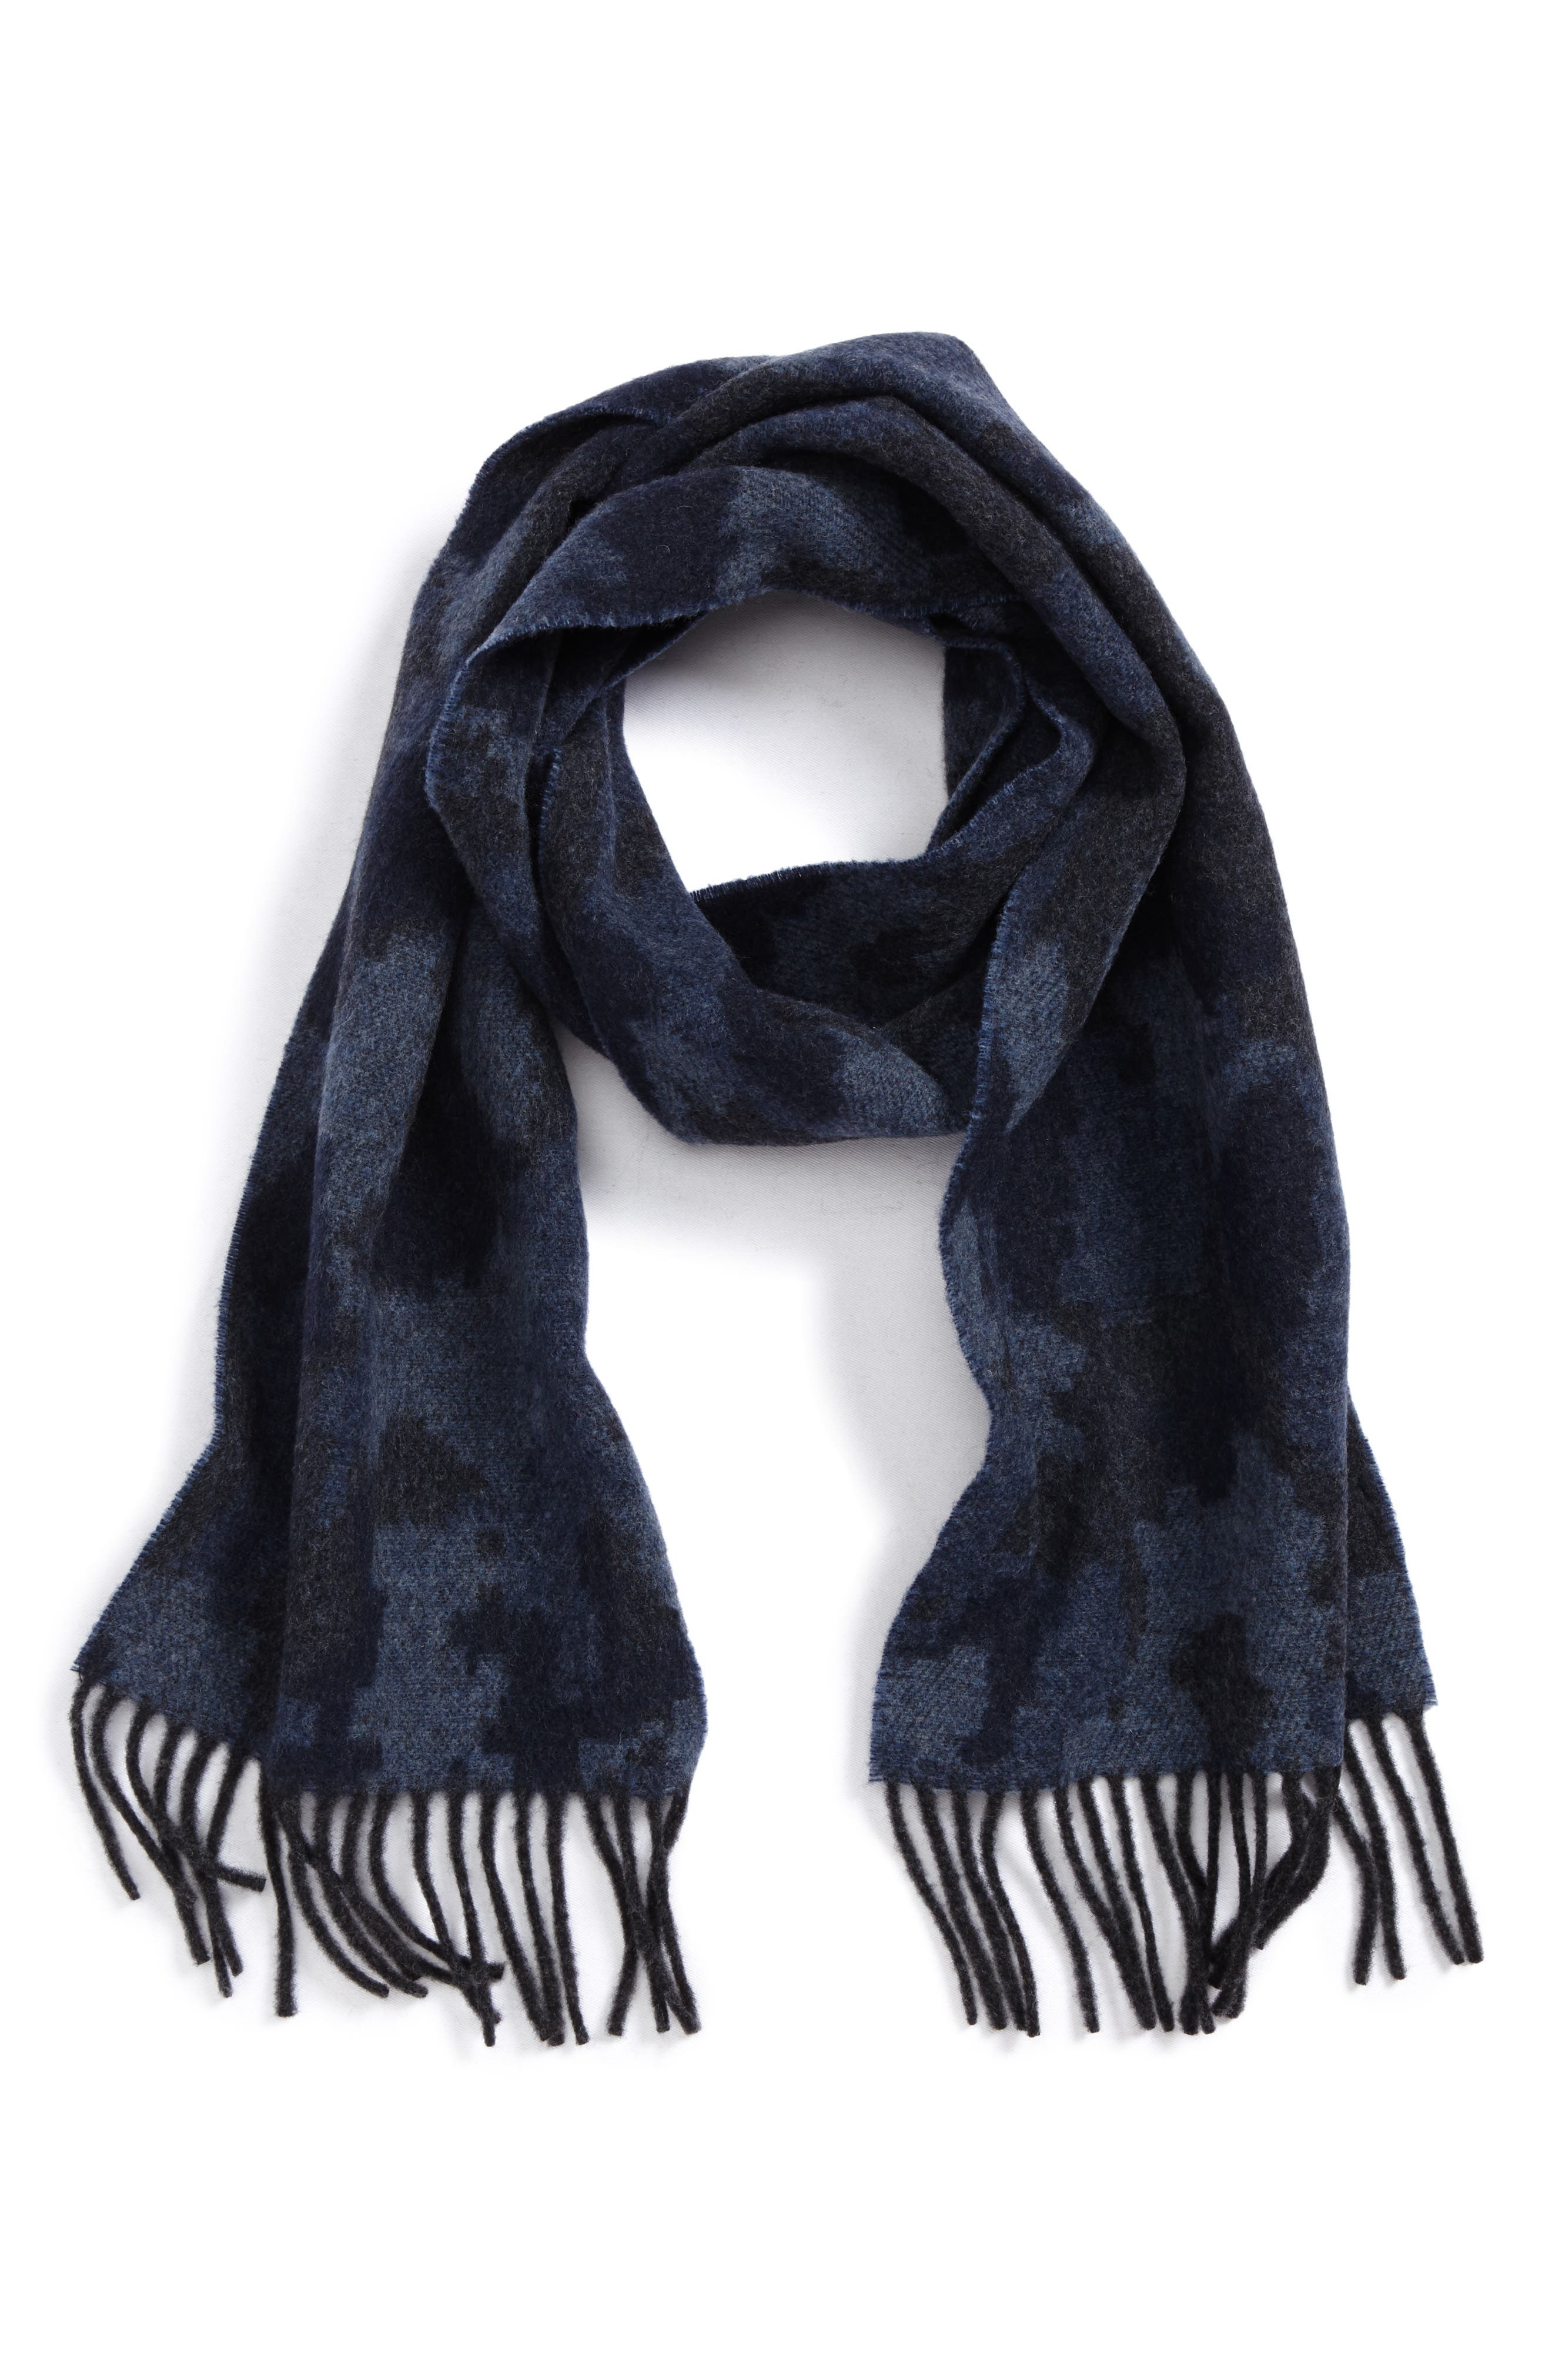 Jacquard Camo Wool & Cashmere Scarf,                             Main thumbnail 1, color,                             Navy